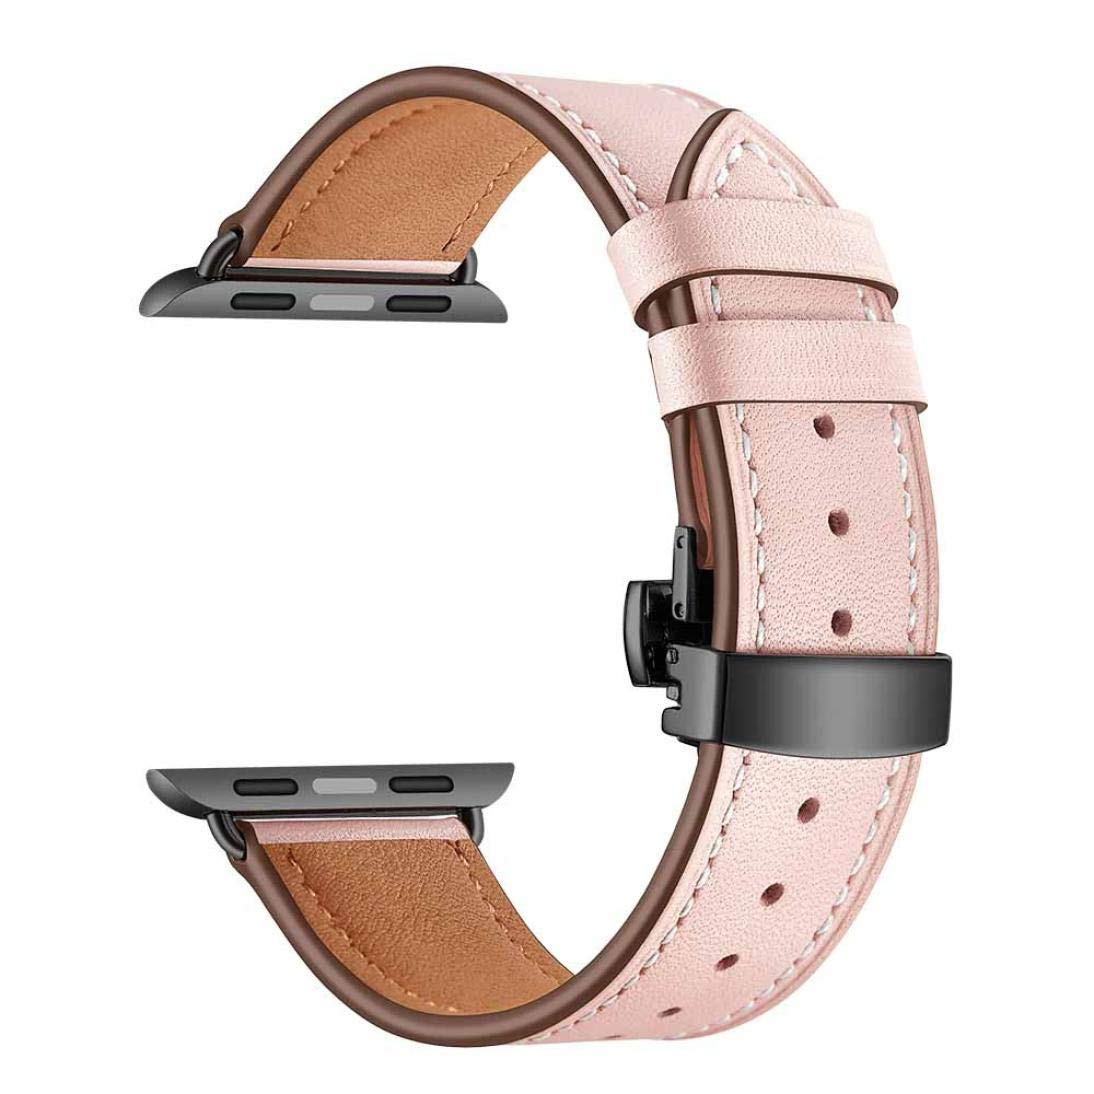 Wristband Watch Strap For IWatch Apple Watch 42mm,Saying Brand New Butterfly buckle Leather Wrist Watch Strap Band (Pink)